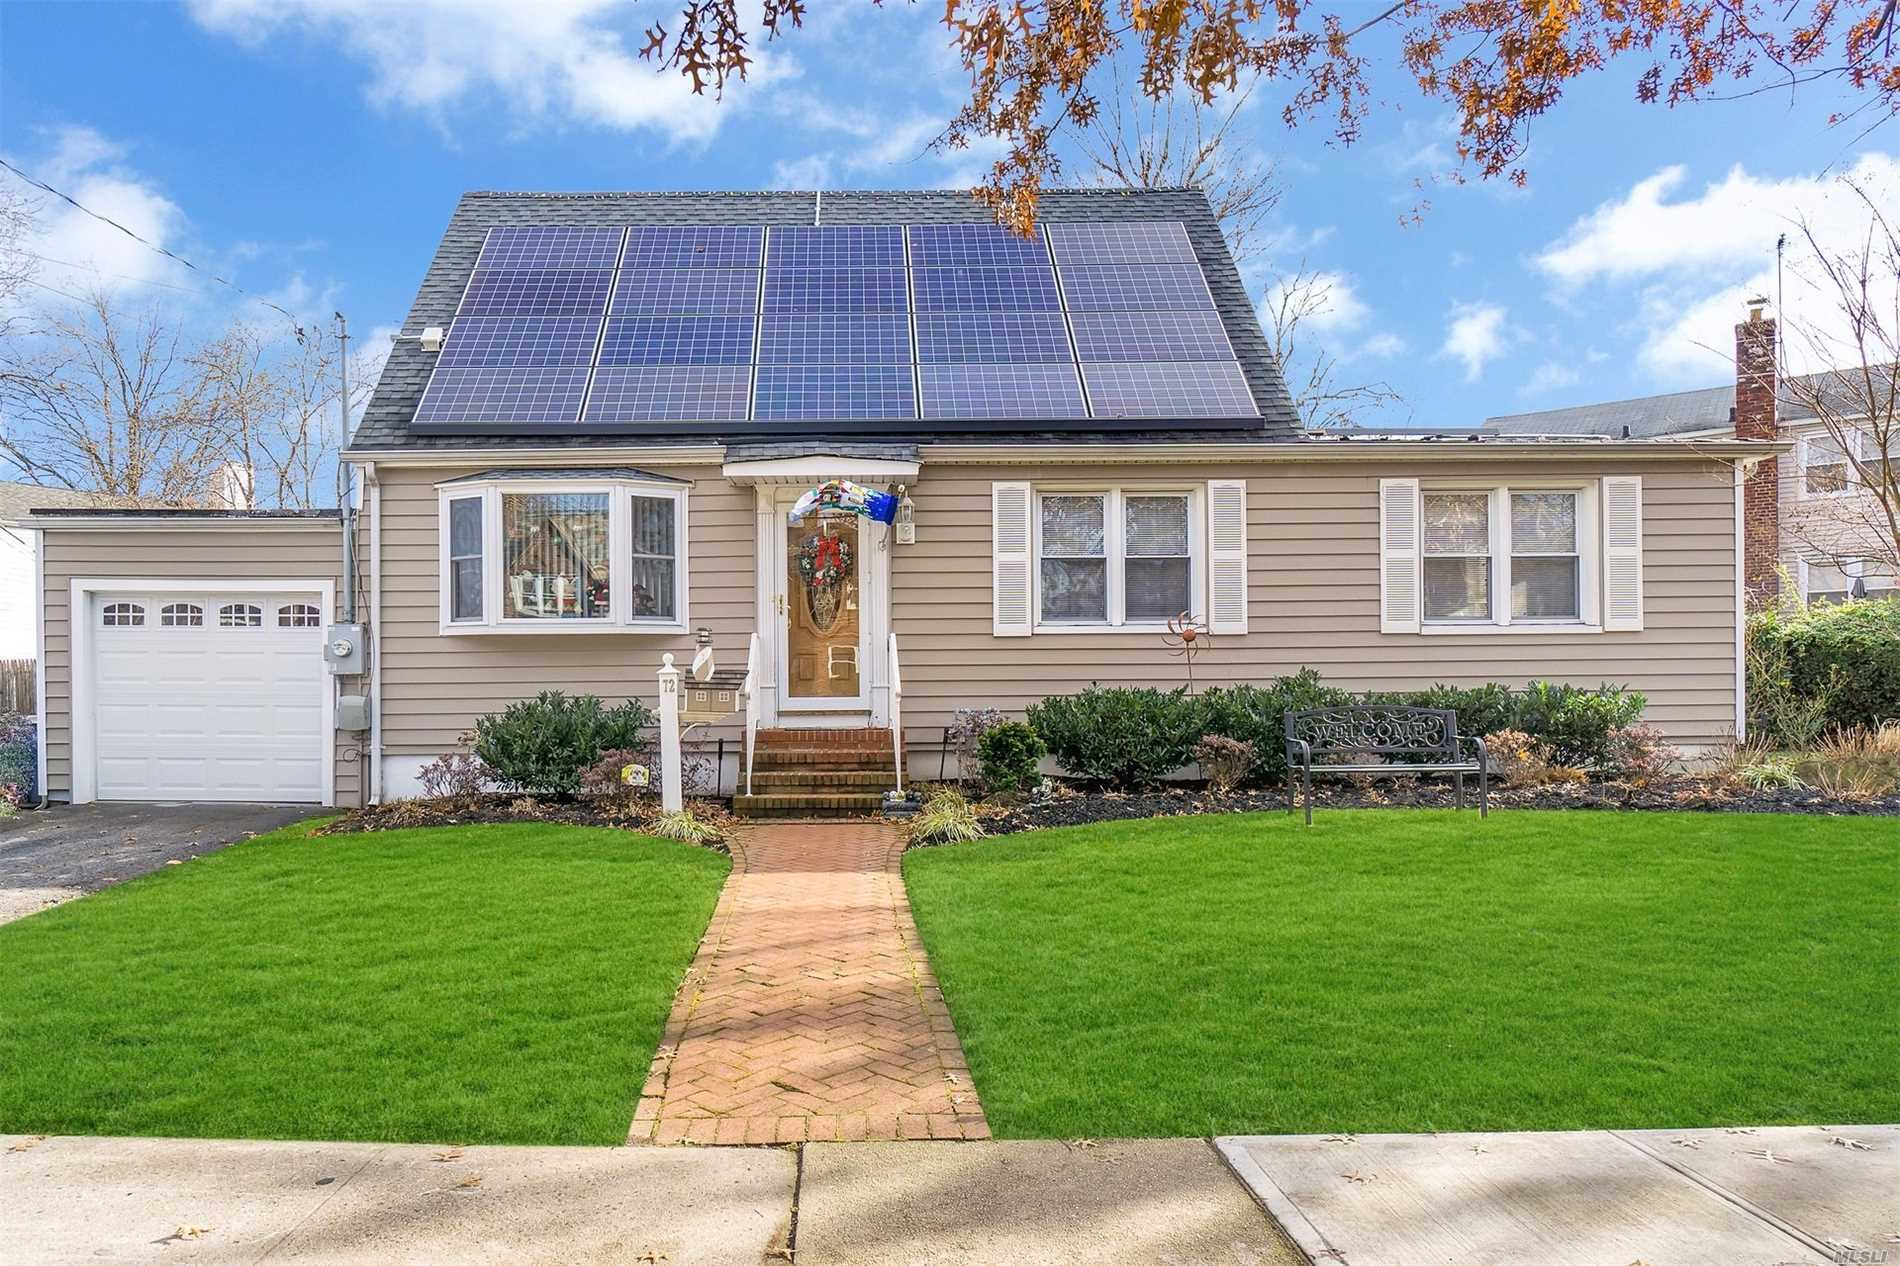 Pride Of Ownership At Its Very Best! Immaculately Maintained 2/3 Bedroom Energy Efficient Cape In Hewlett-Woodmere Sd. Everything Updated From 2006 & On. New 50 Yr Arc Roof, New Windows, Insulation, Plumbing & Electric Throughout. New Vinyl Siding. Updated Furnace & Ductwork W/ 2018 Hw Heater. Stunning Finishes, Appliances, Moldings, & Hw Floors. Spacious Back Yard W/Deck And 3 Zone Igs. New Sewer Line & Top Of The Line French Drain System. A Must See, Way Too Much To List Everything.